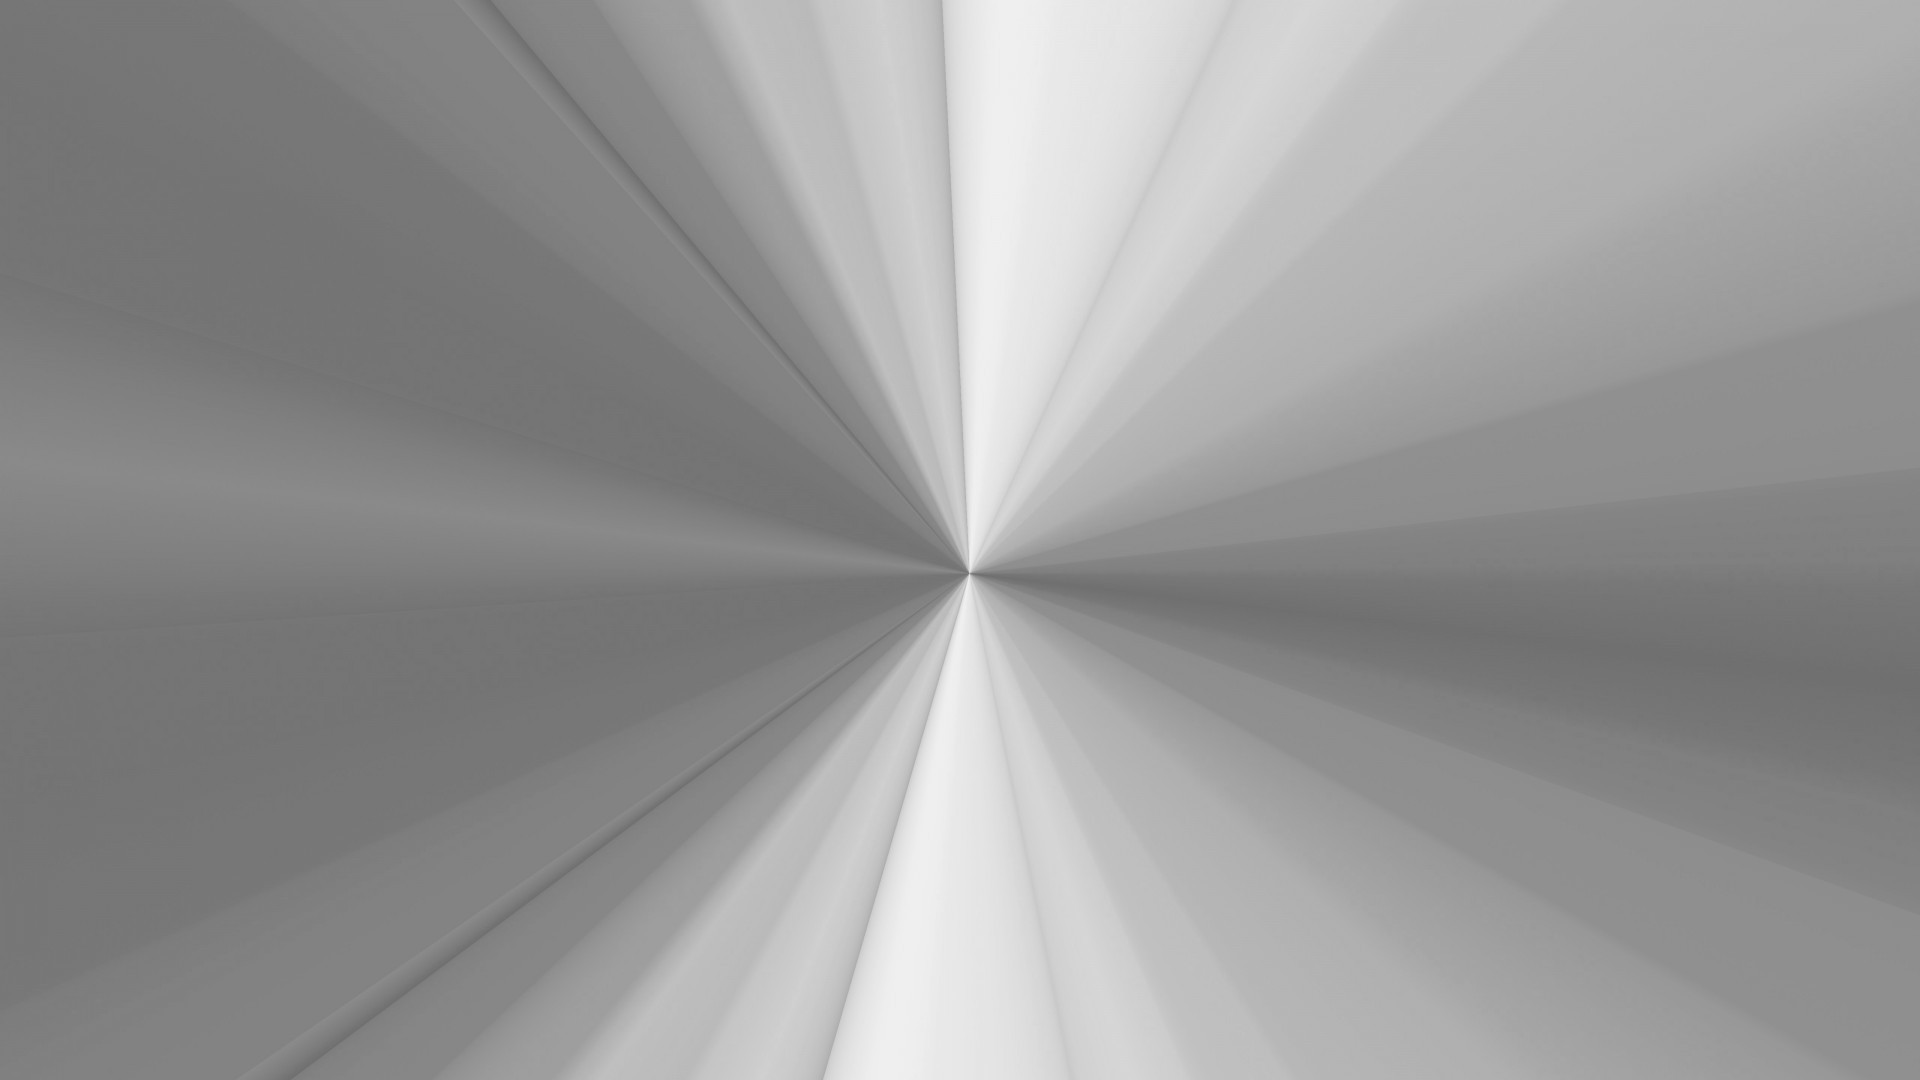 Iphone X Wallpaper Size Overlay Gray Background 183 ① Download Free Awesome Hd Wallpapers For